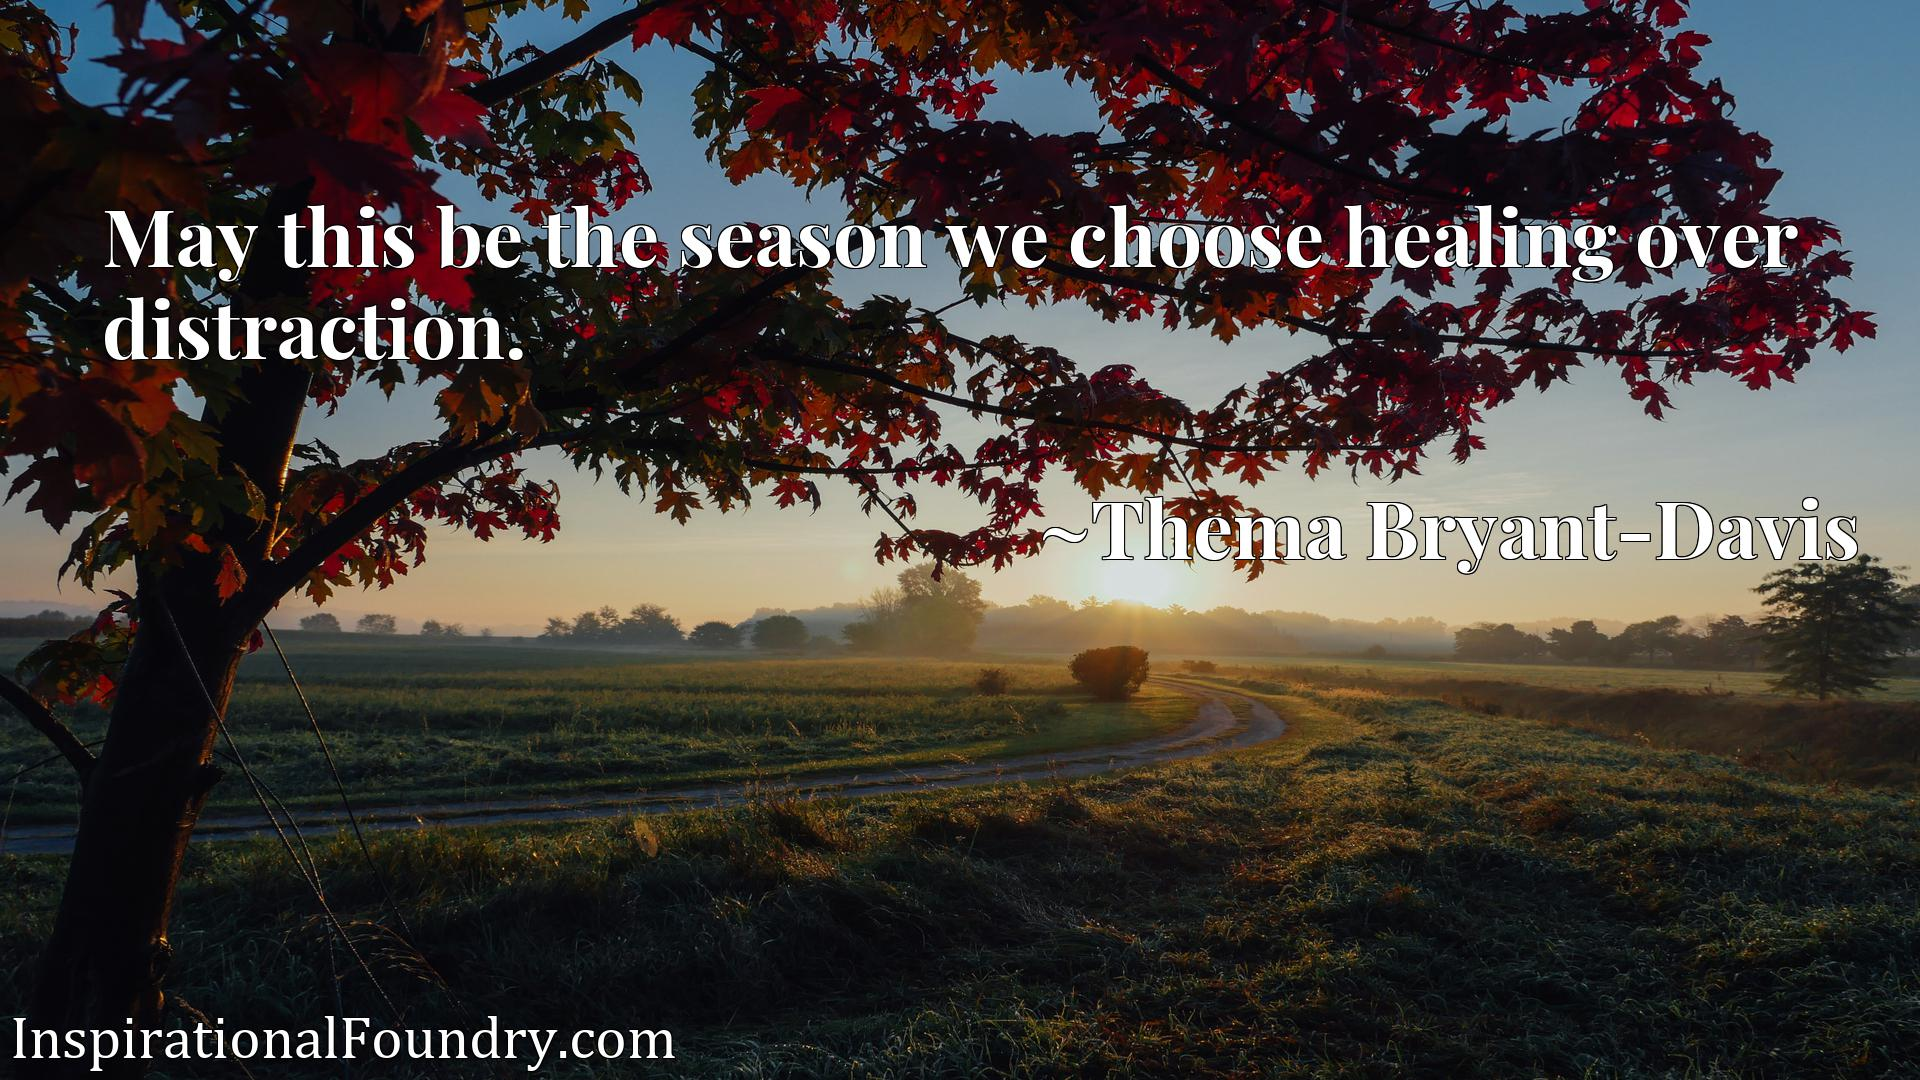 May this be the season we choose healing over distraction.